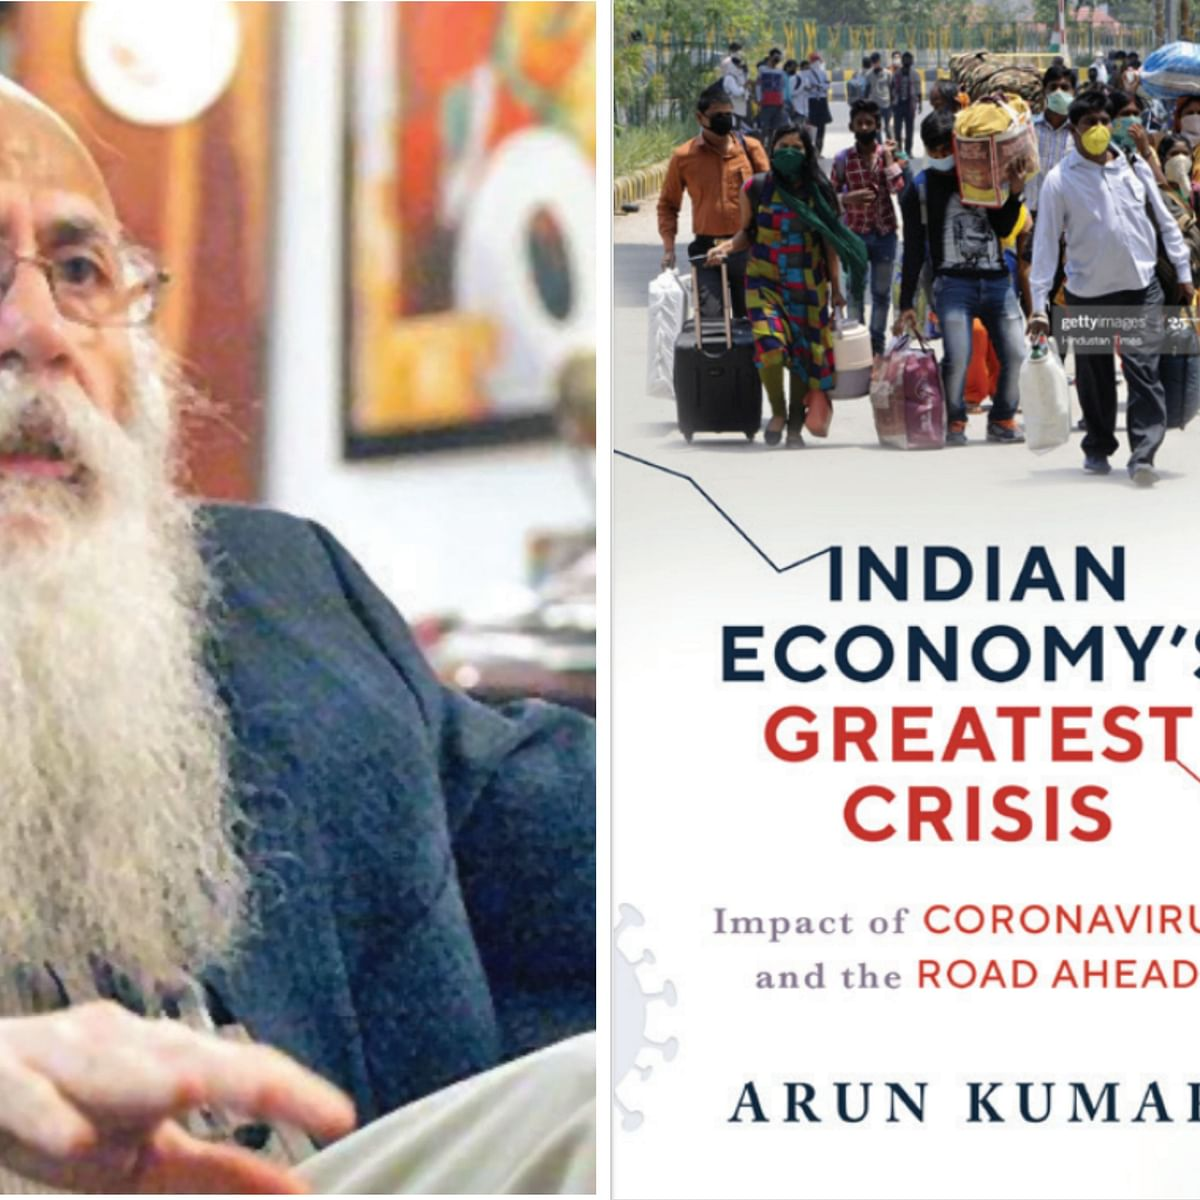 Govt employees and pensioners are not in distress : Prof Arun Kumar